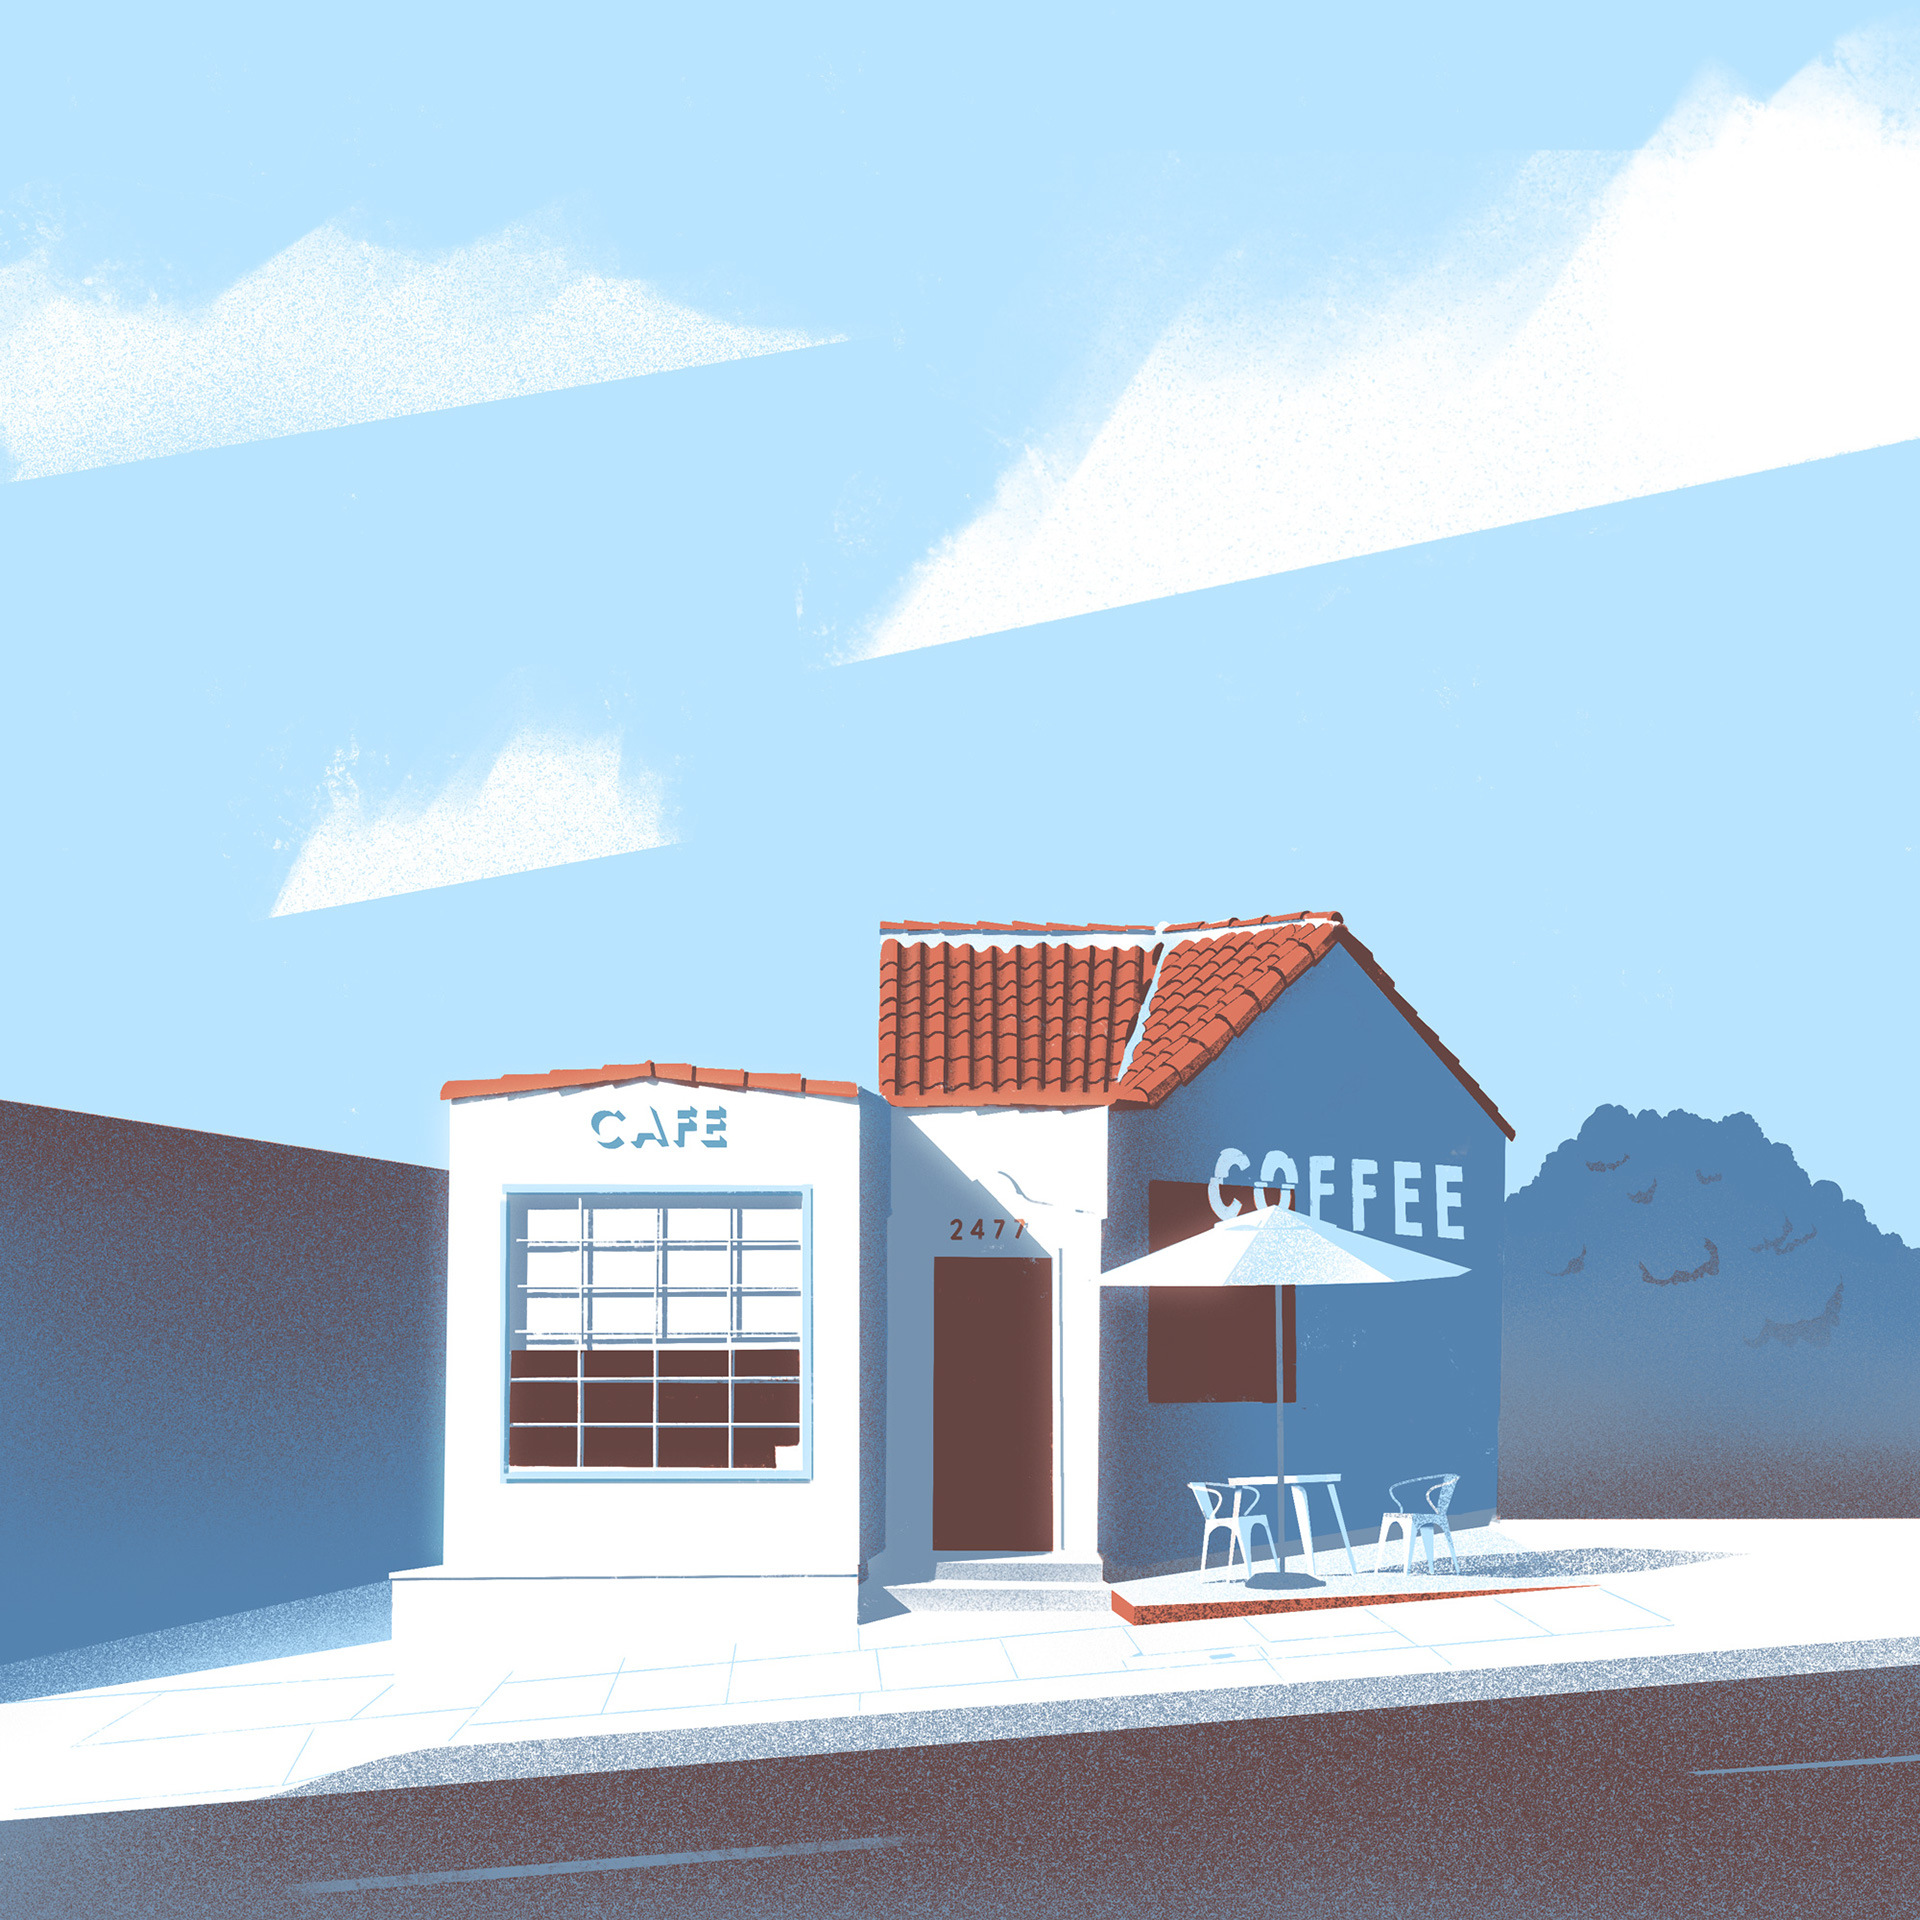 Minimalist Architectural Illustrations of Californian Buildings